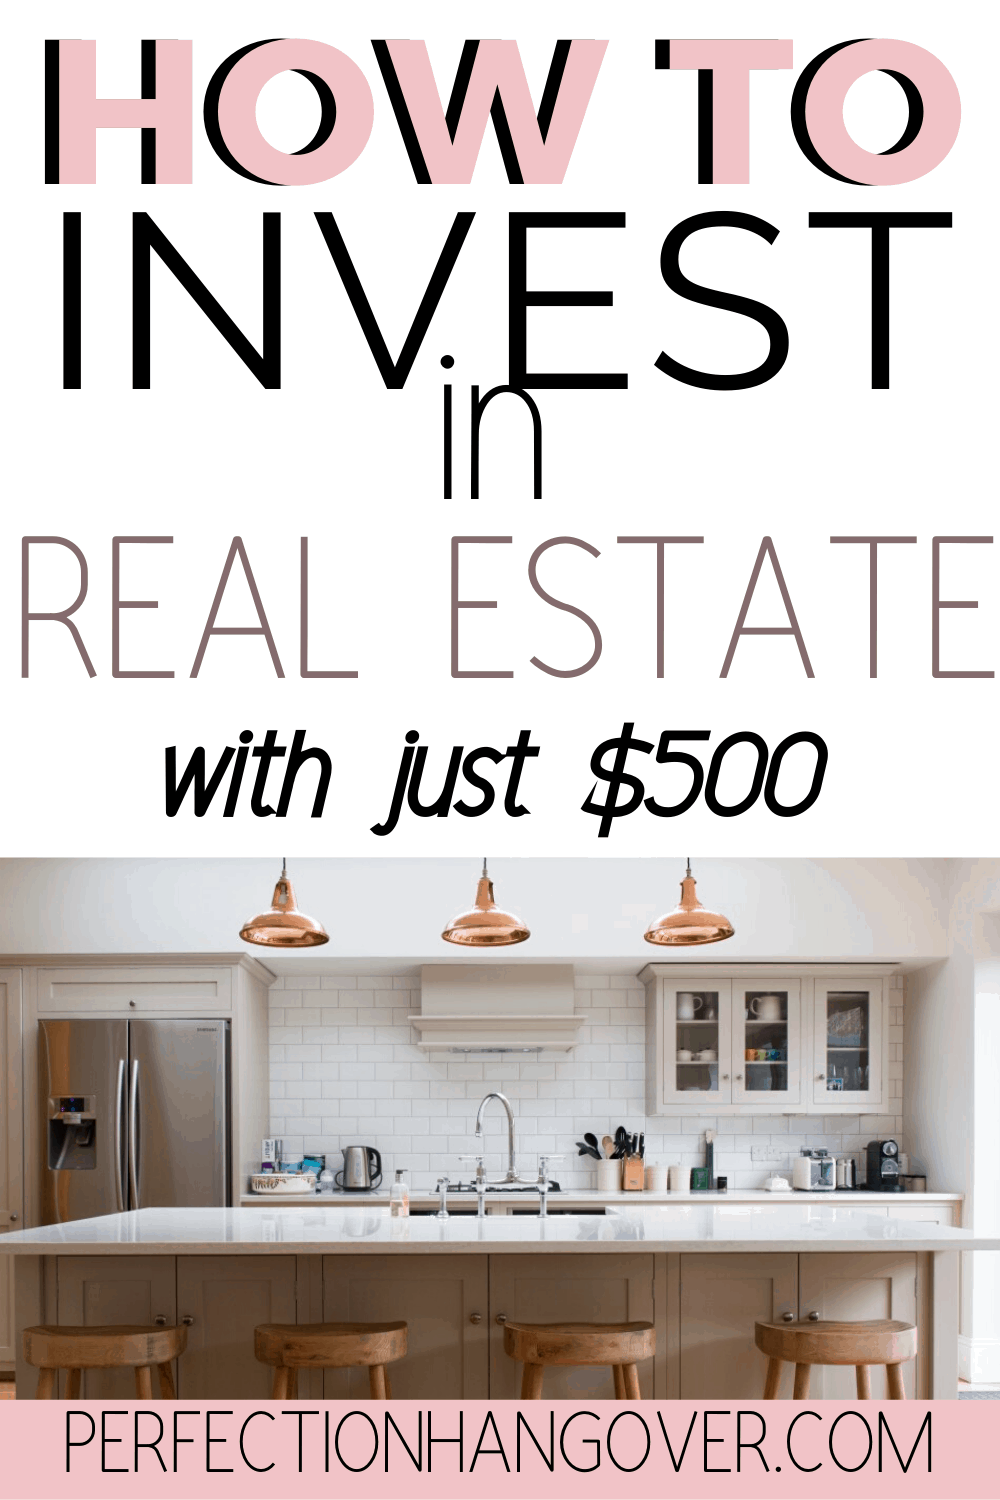 How to Invest in Real Estate Diversyfund Review